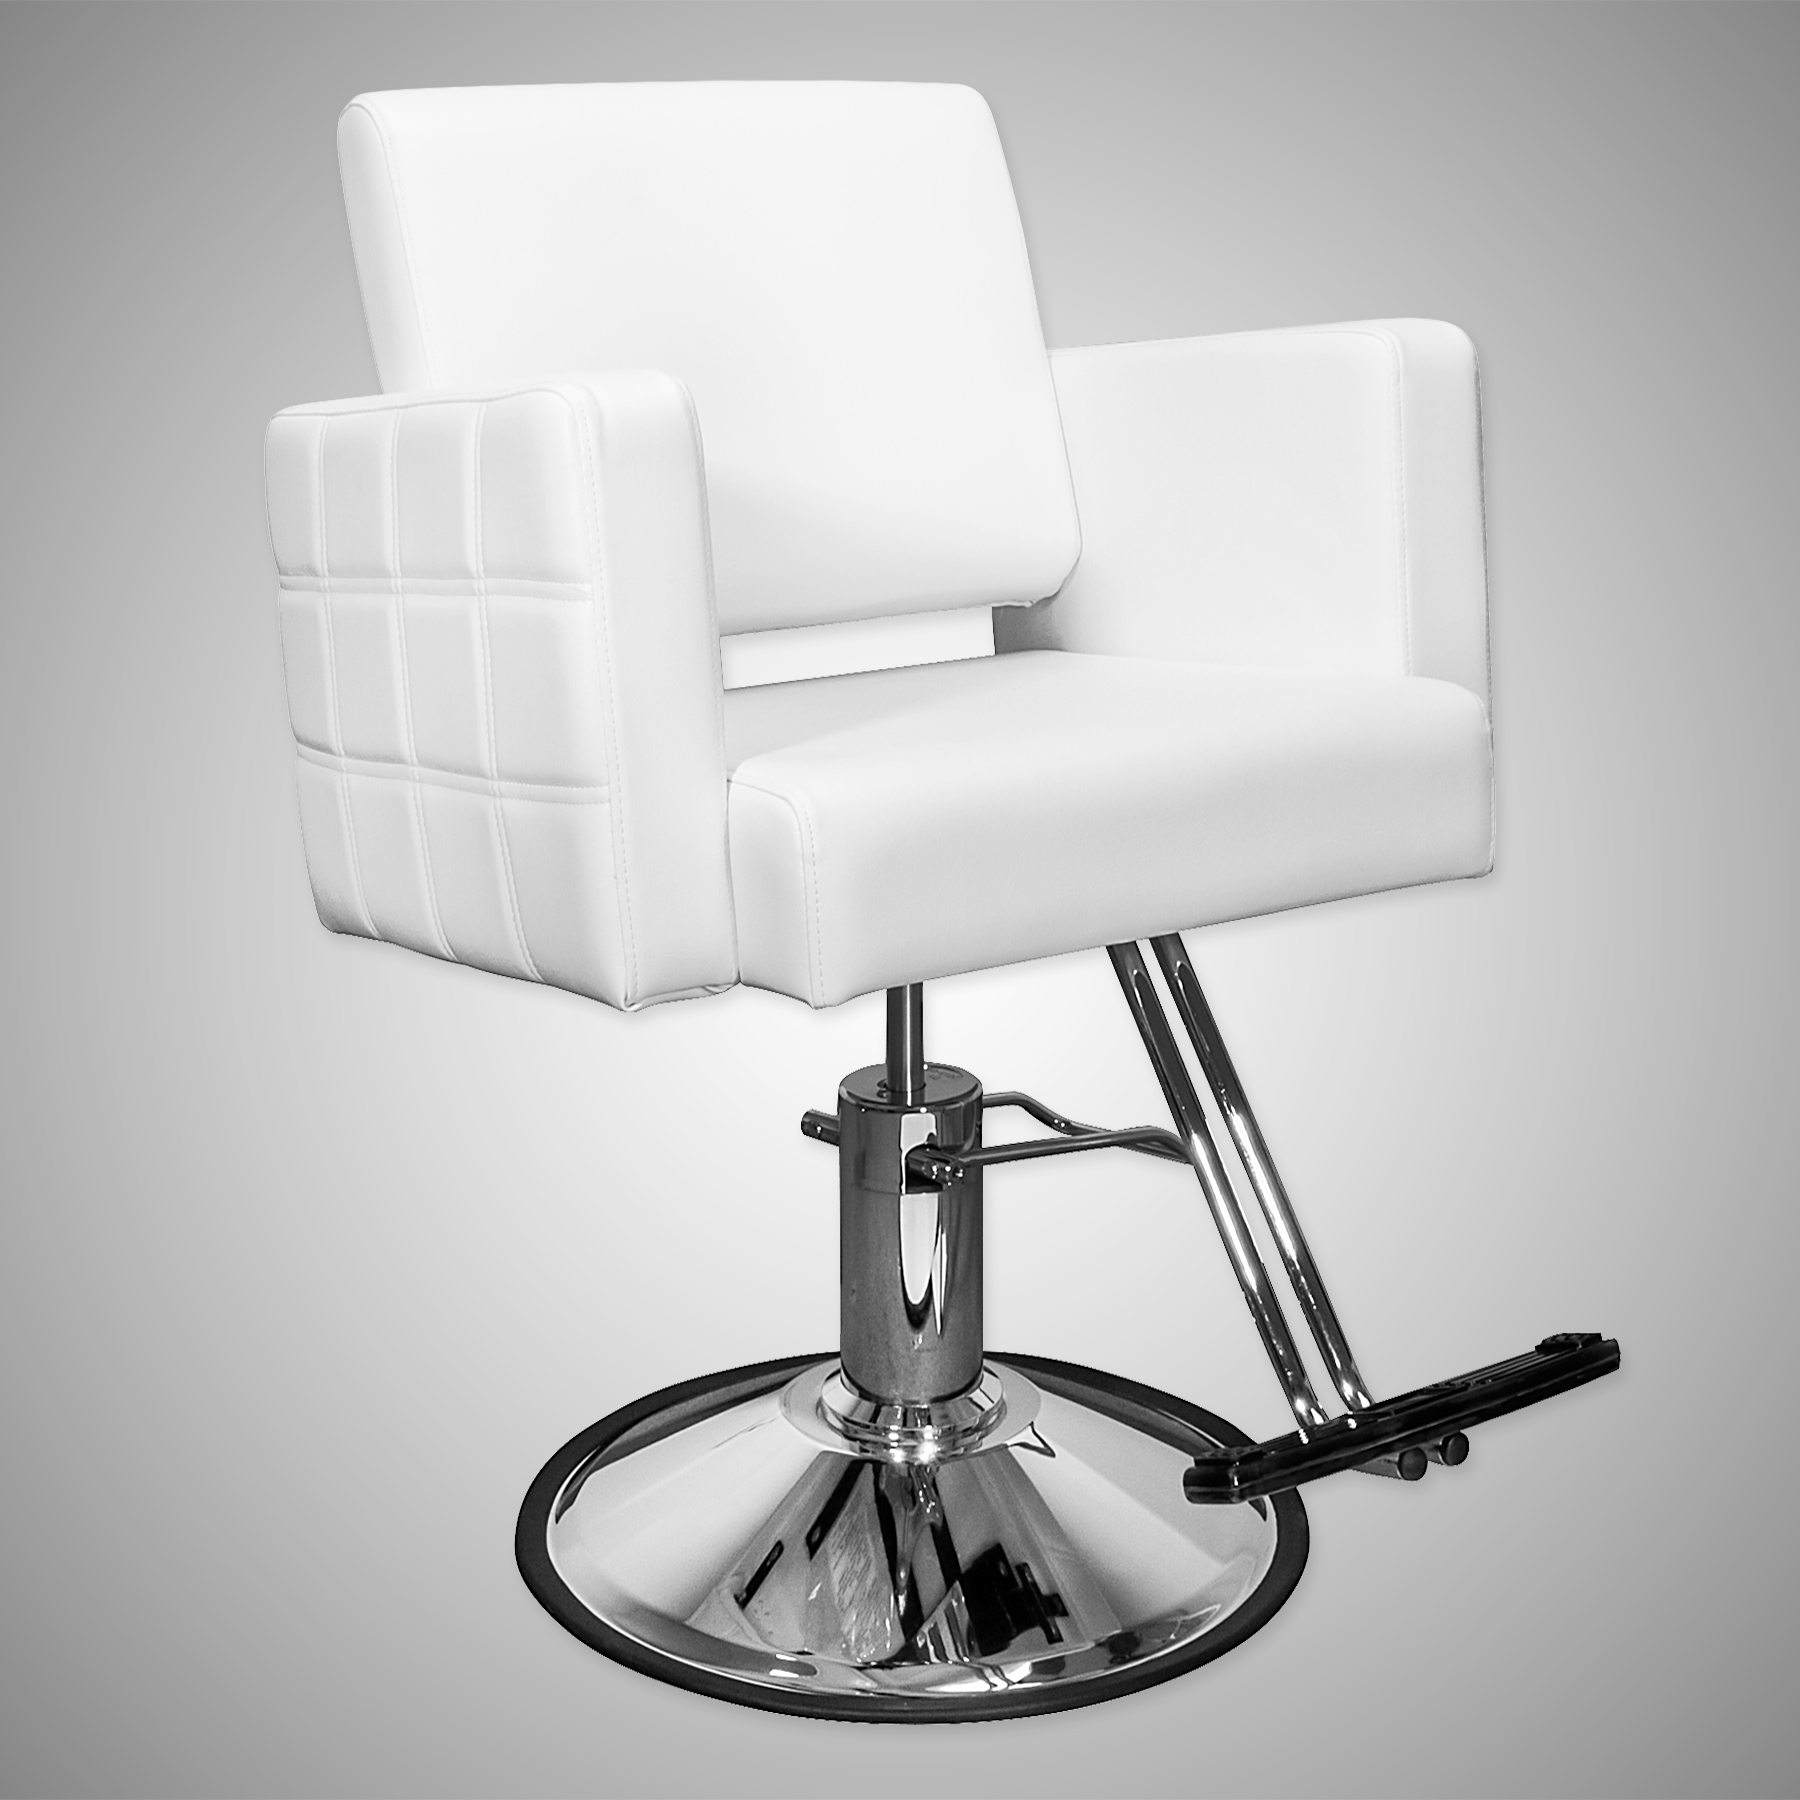 Havana Stylist Chair Quilted White alternative product image 1